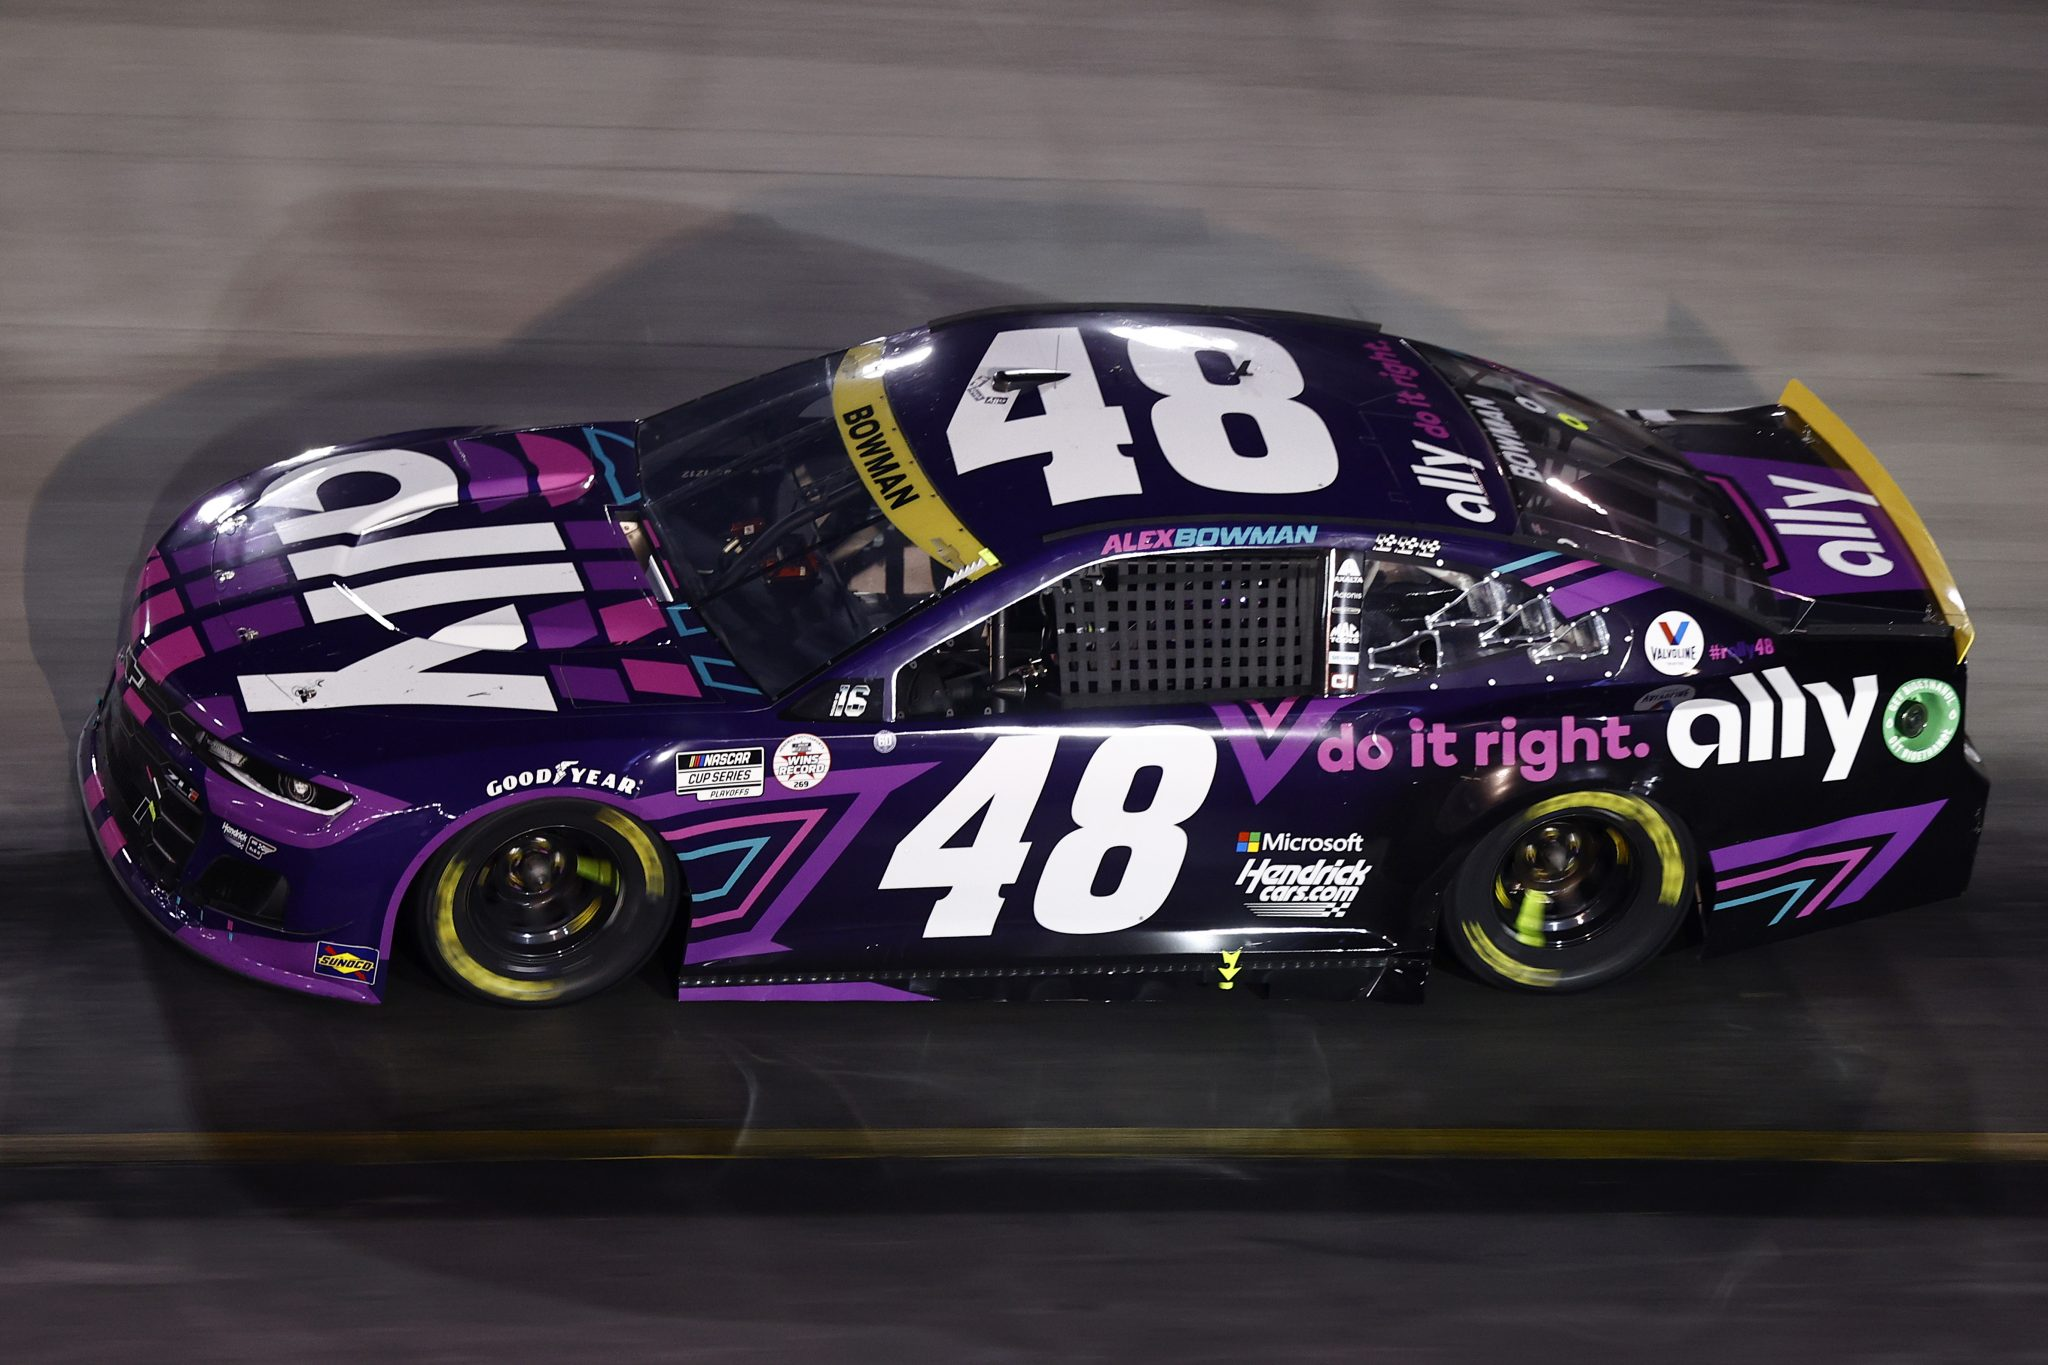 BRISTOL, TENNESSEE - SEPTEMBER 18: Alex Bowman, driver of the #48 Ally Chevrolet, drives during the NASCAR Cup Series Bass Pro Shops Night Race at Bristol Motor Speedway on September 18, 2021 in Bristol, Tennessee. (Photo by Jared C. Tilton/Getty Images) | Getty Images